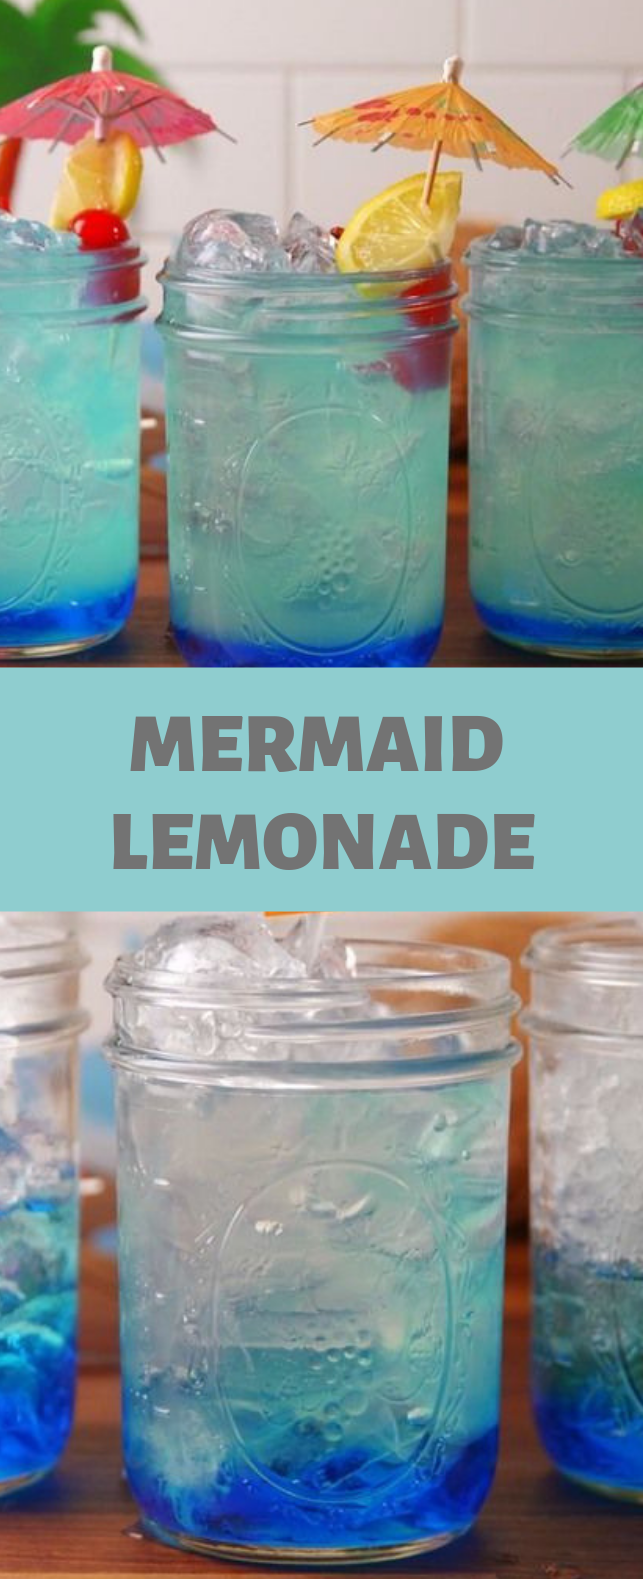 Mermaid Lemonade #lemonade #drink